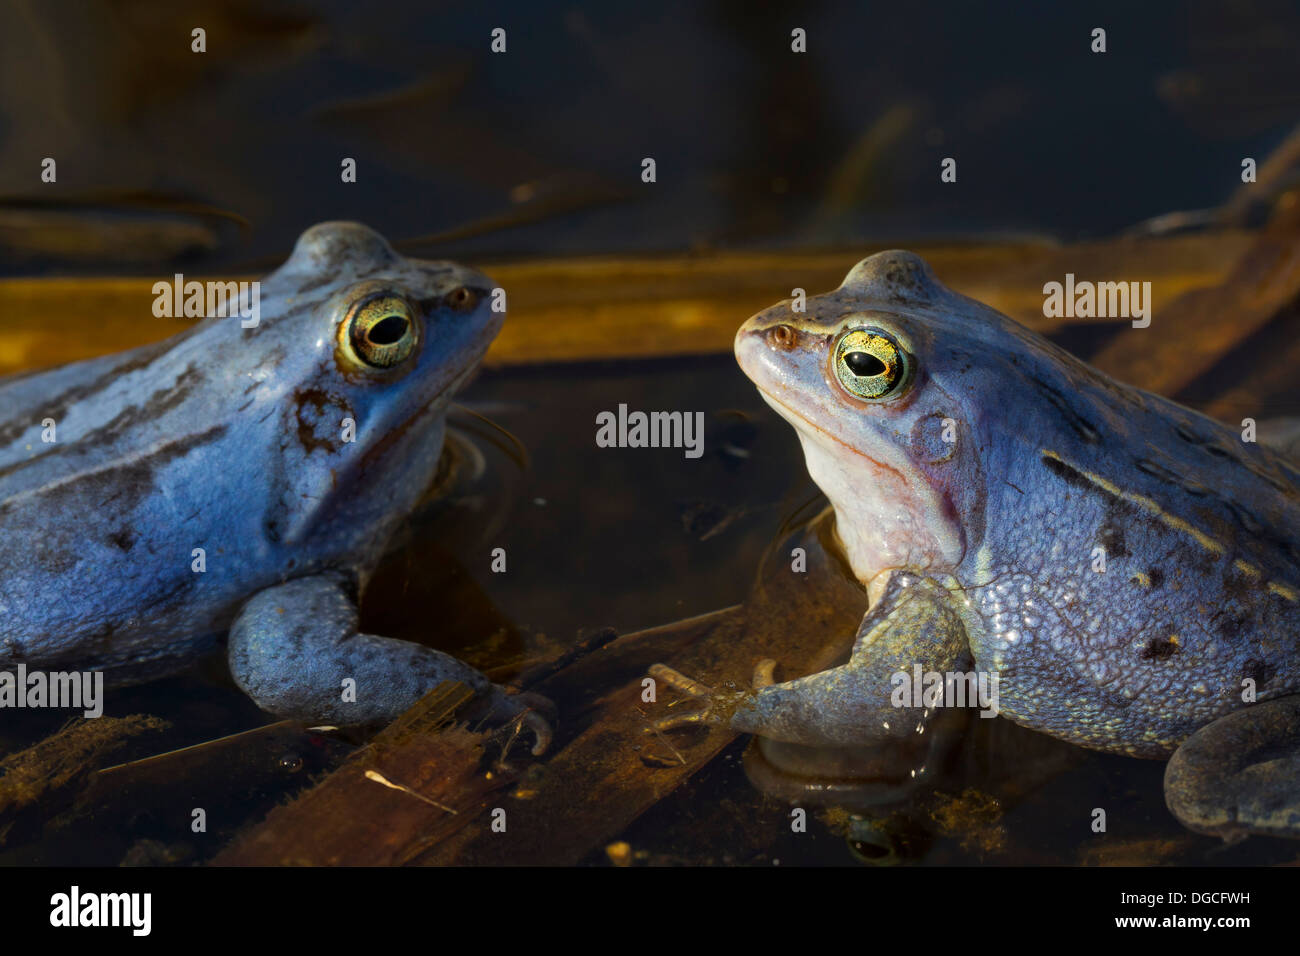 Two Moor Frogs (Rana arvalis) blue coloured males floating in pond during the breeding season in spring - Stock Image